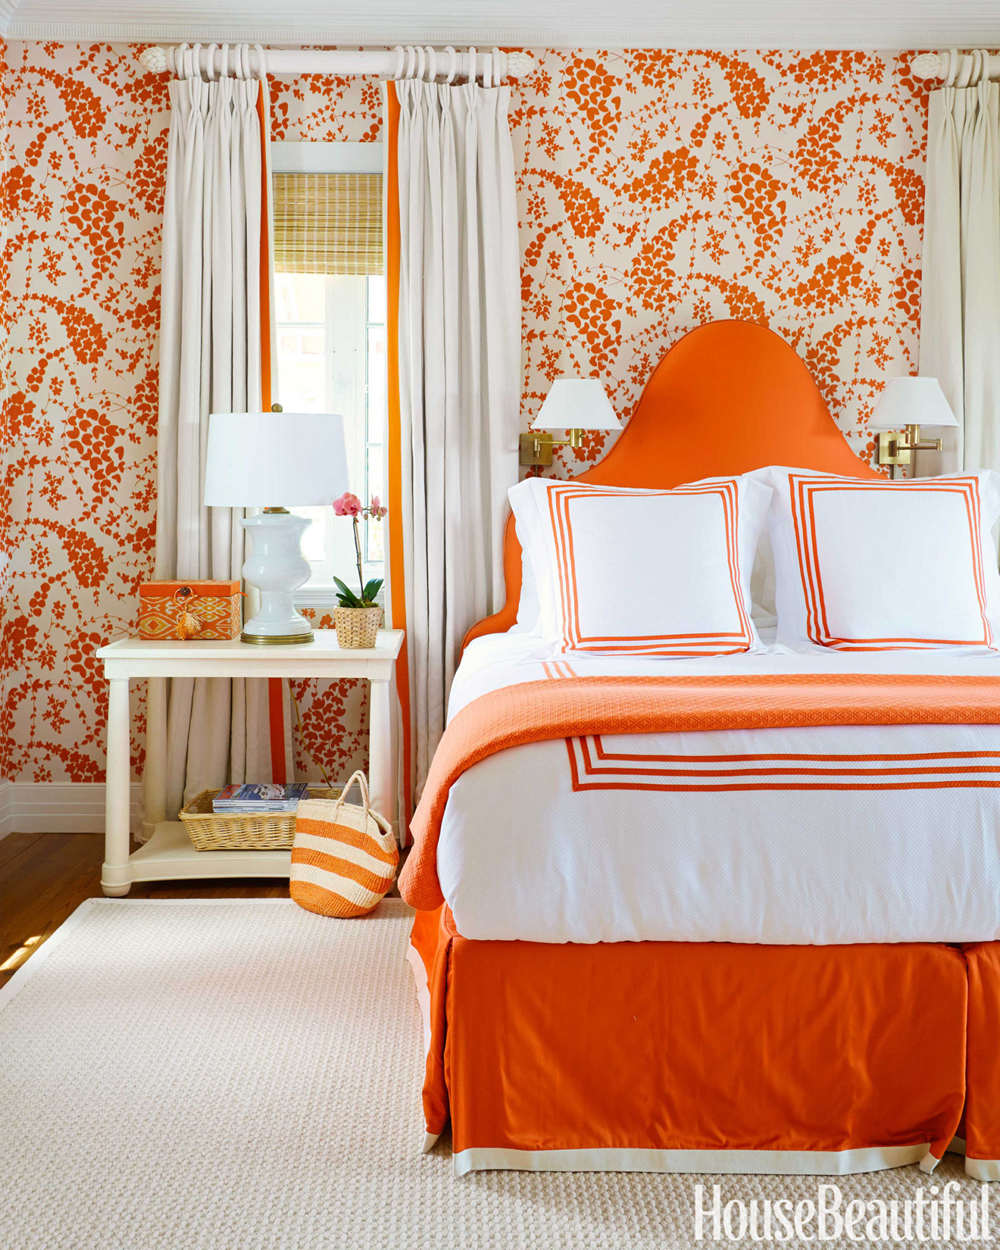 China seas lysette wallpaper by amanda lindroth in house for House beautiful bedroom decor